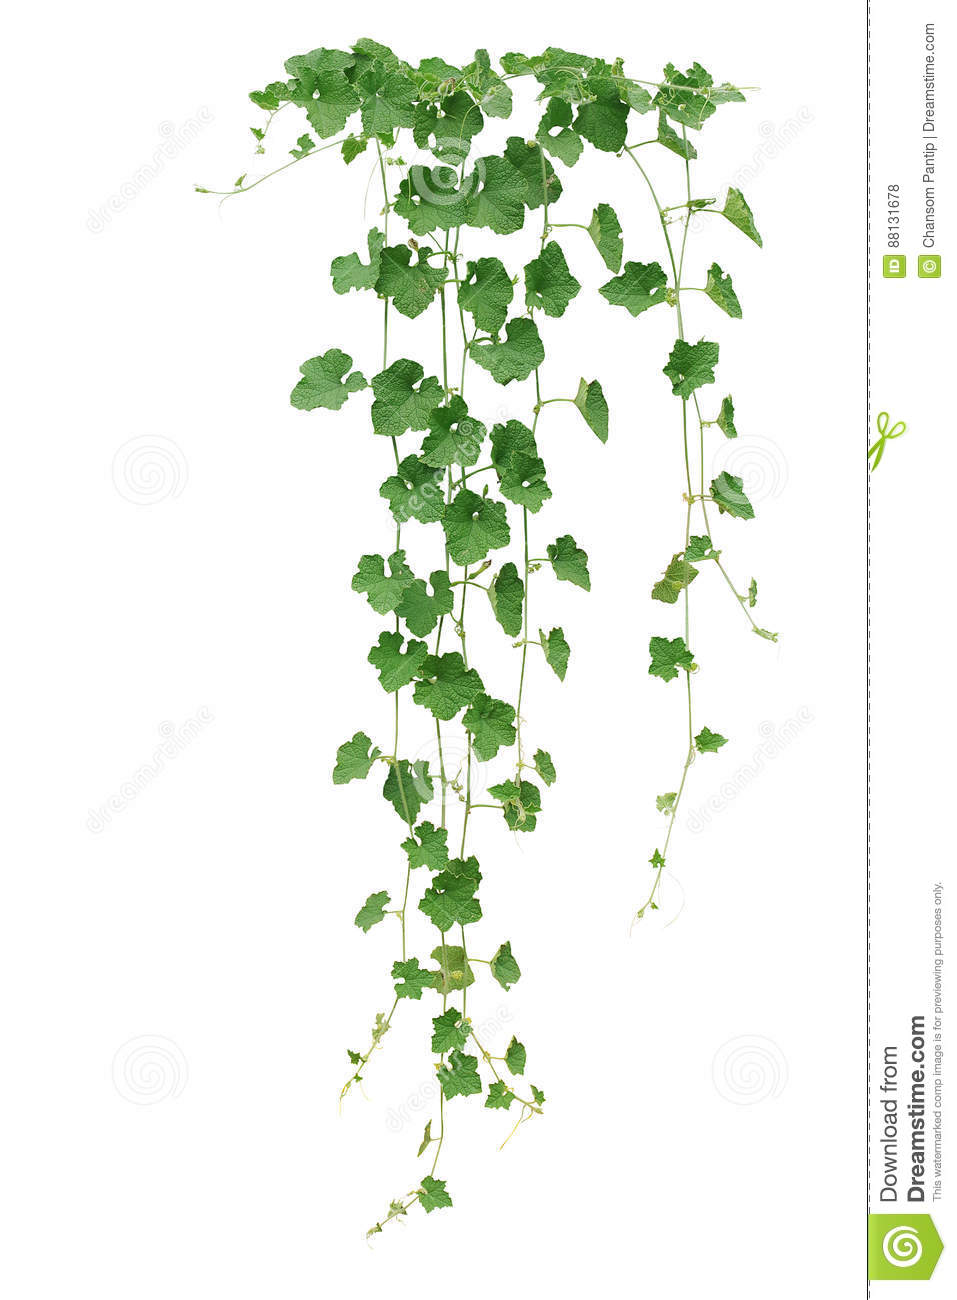 Winter melon or wax gourd vines with thick green leaves and tend